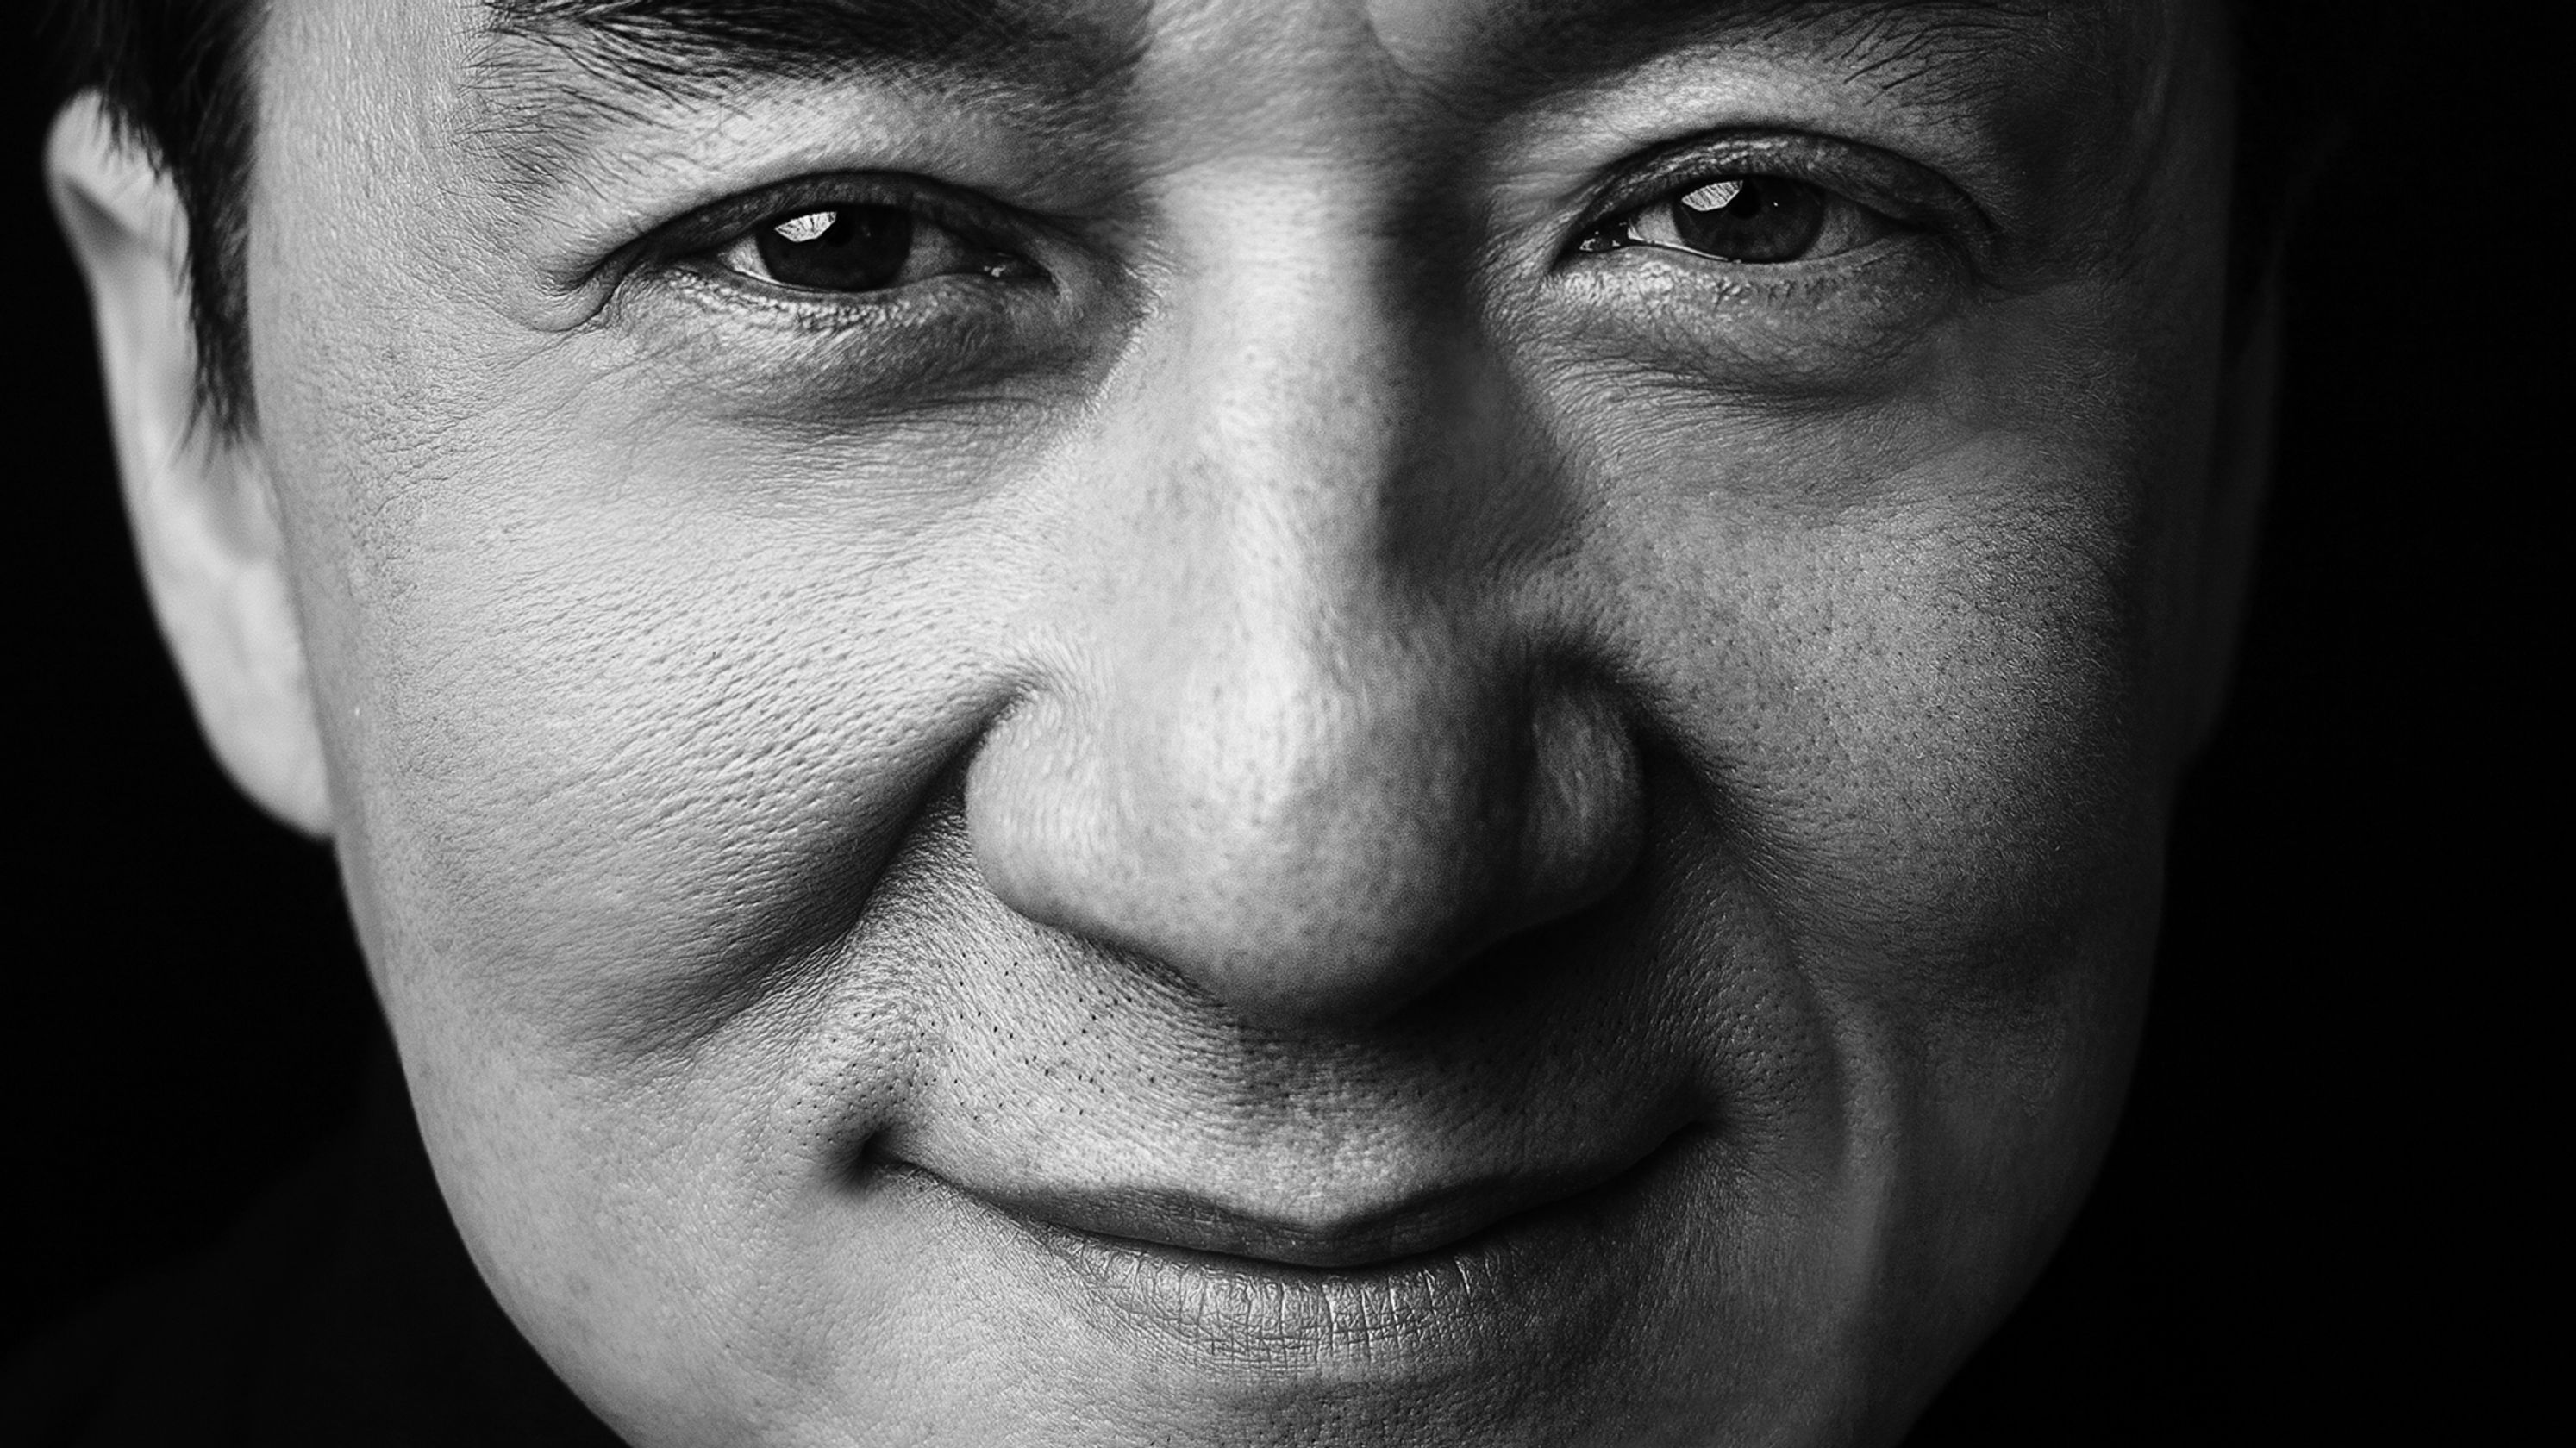 5 new books you won't want to miss this week: Jackie Chan's memoir, new Nora Roberts